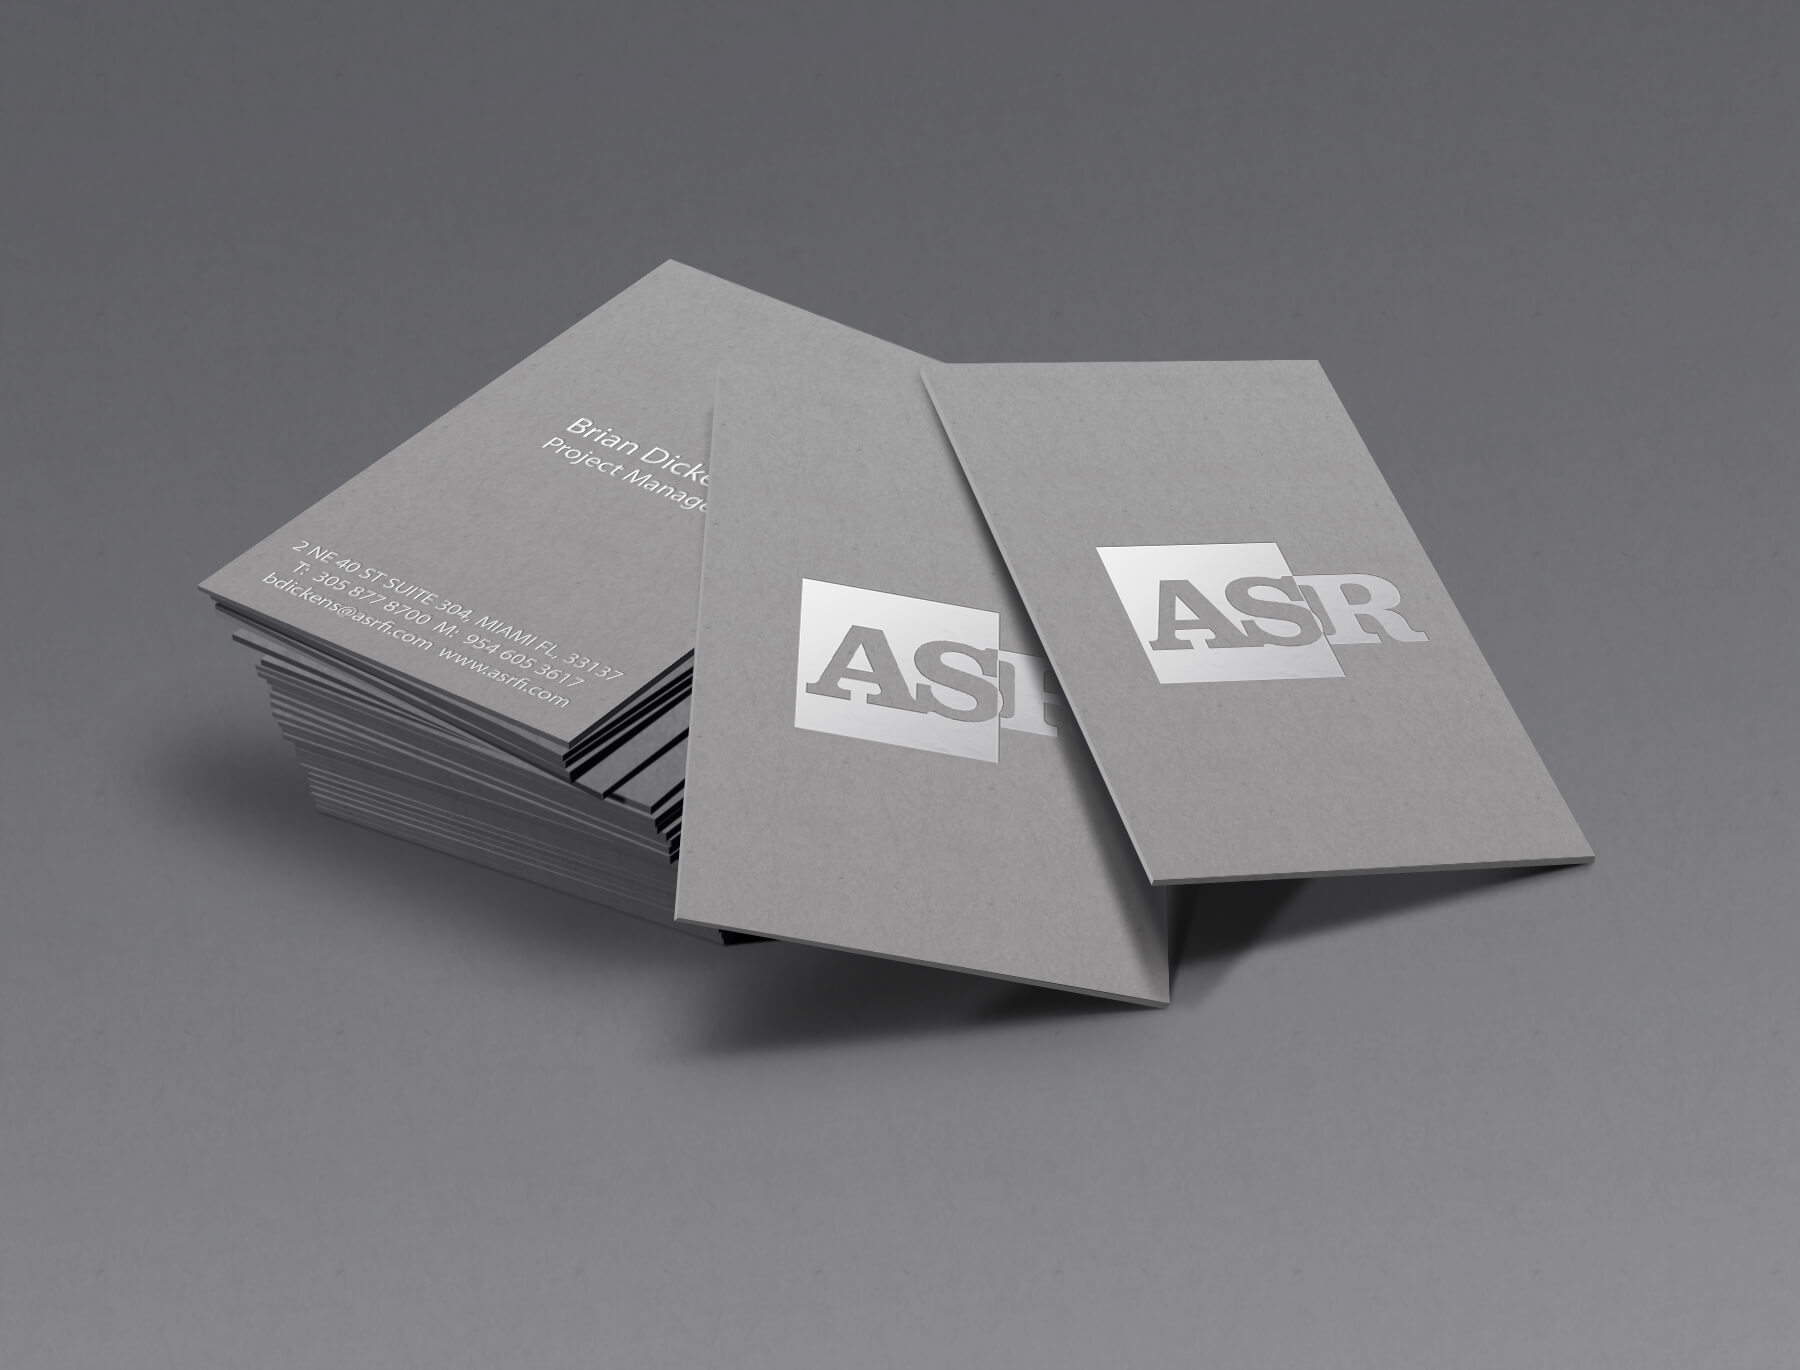 ASR BUSINESS CARDS 5.jpg